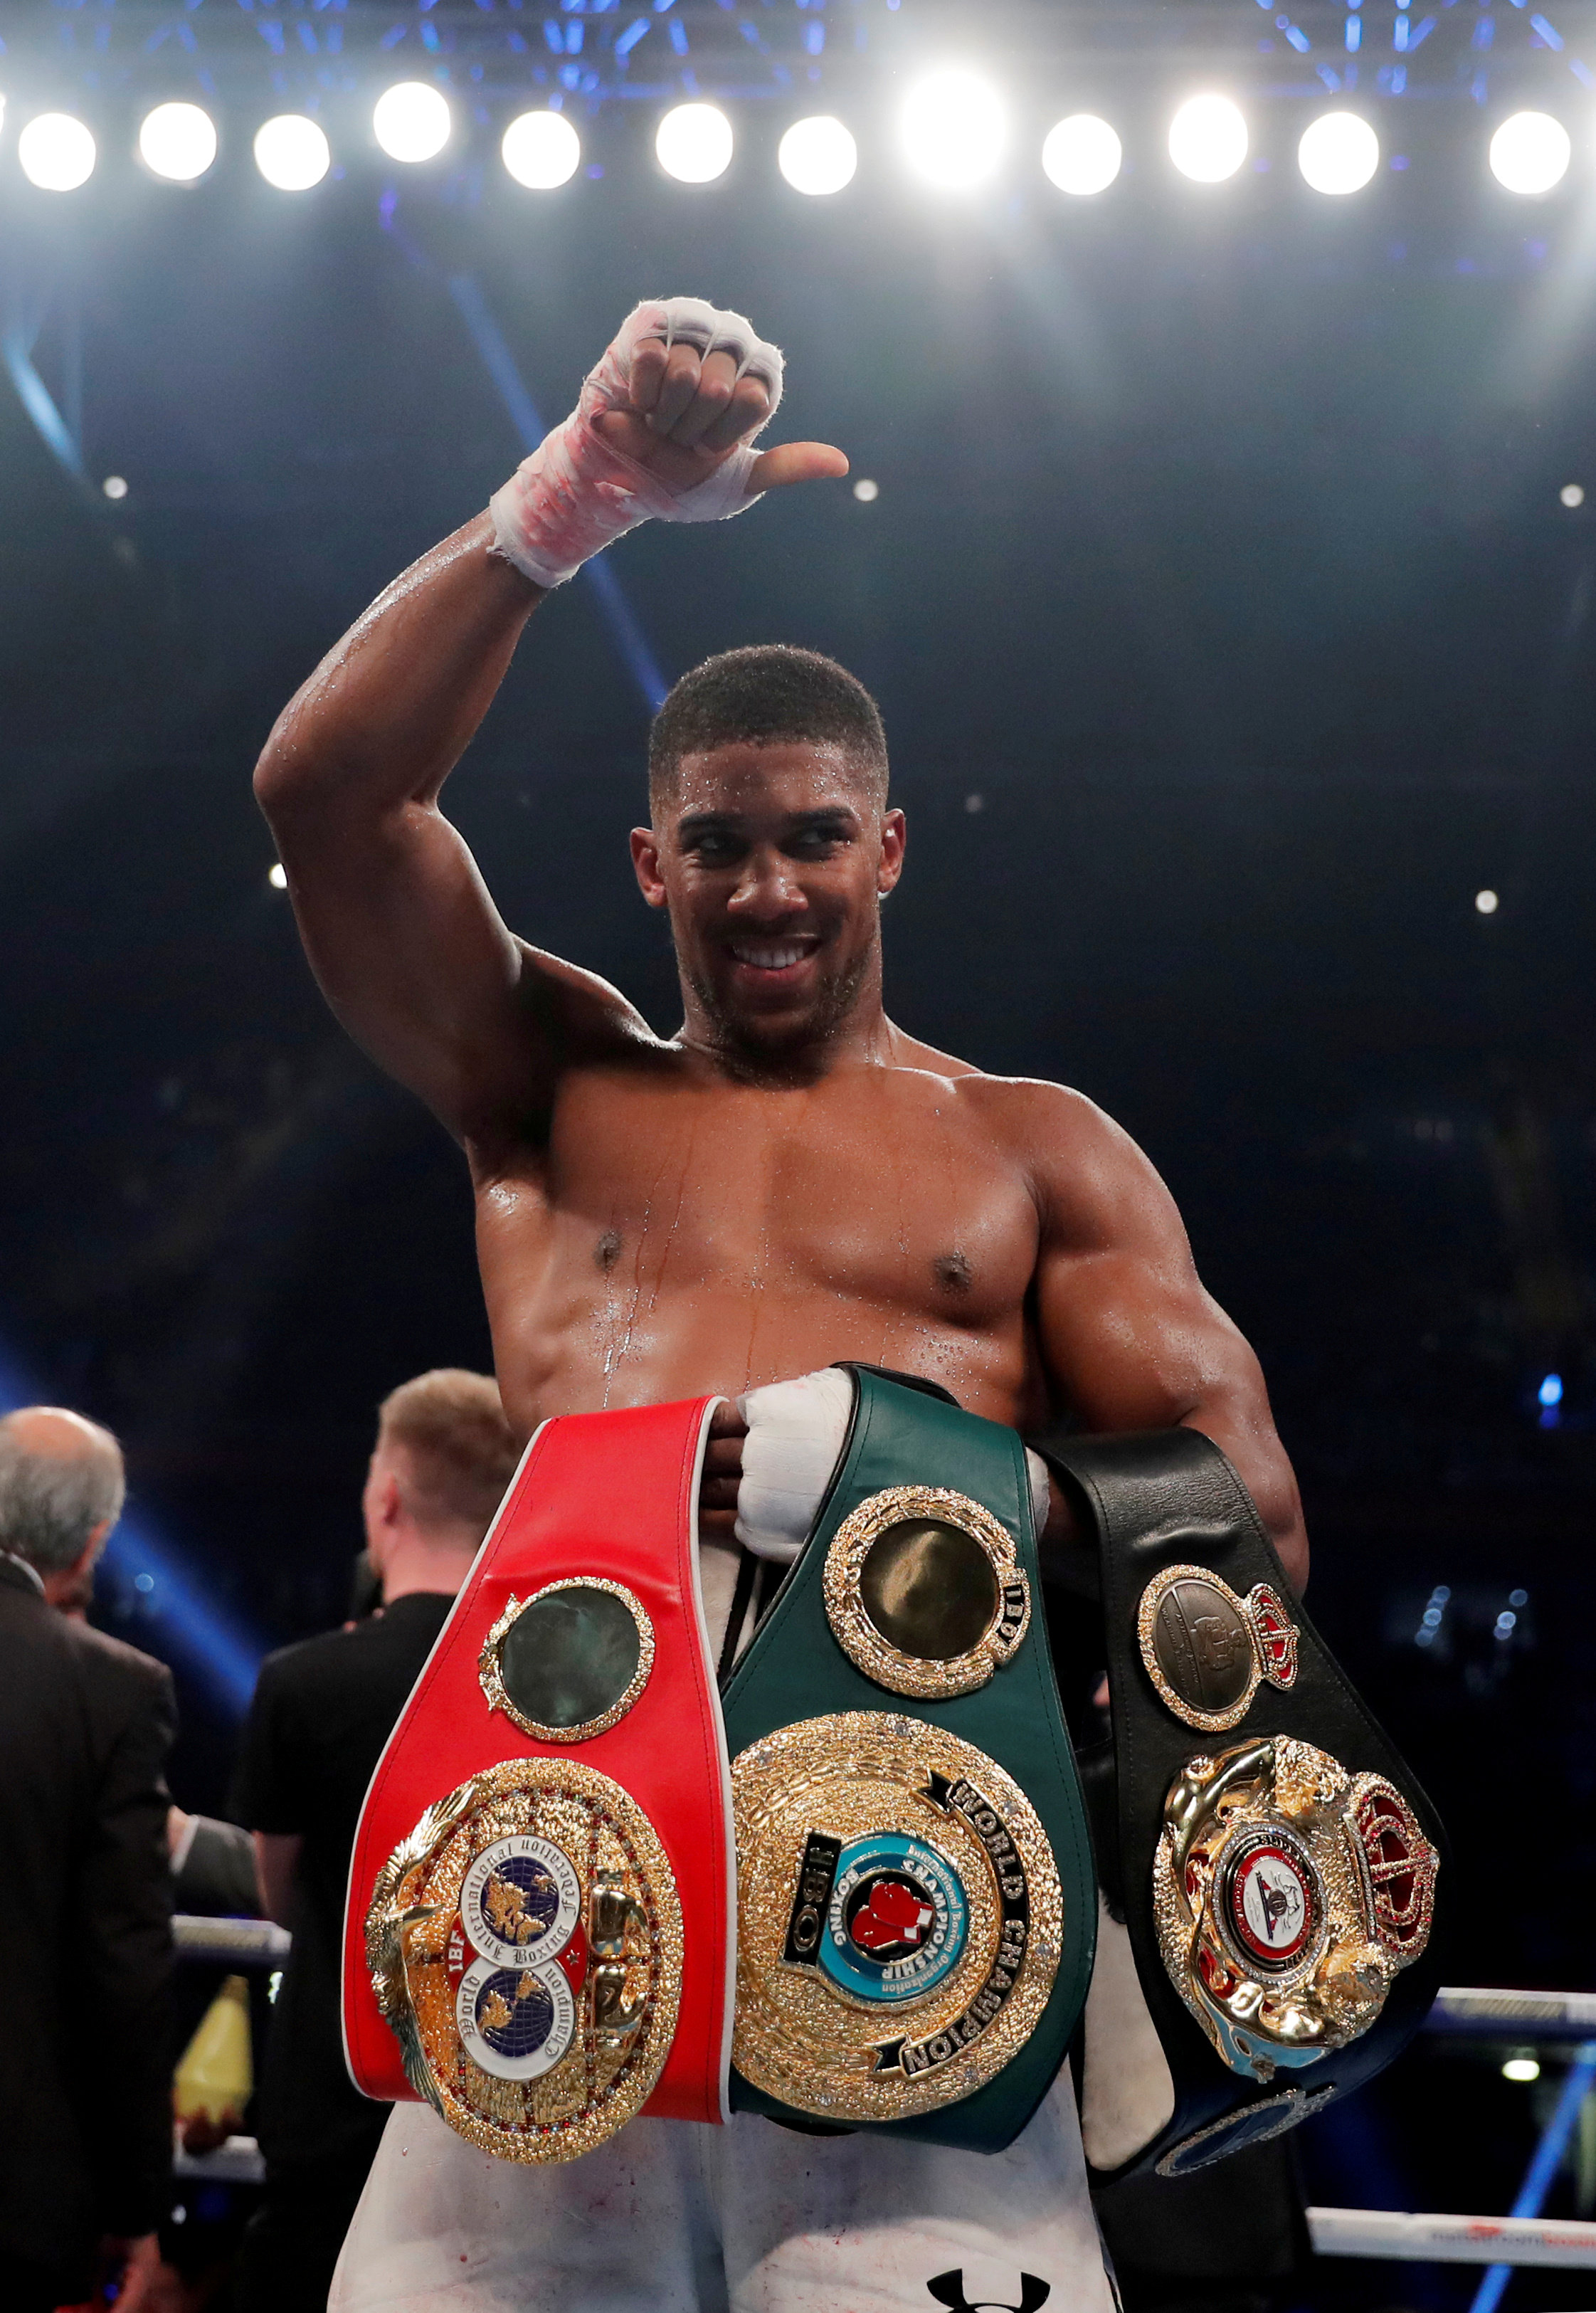 Anthony Joshua is expected to make the most routine defence of his belts when he fights Jarrell Miller